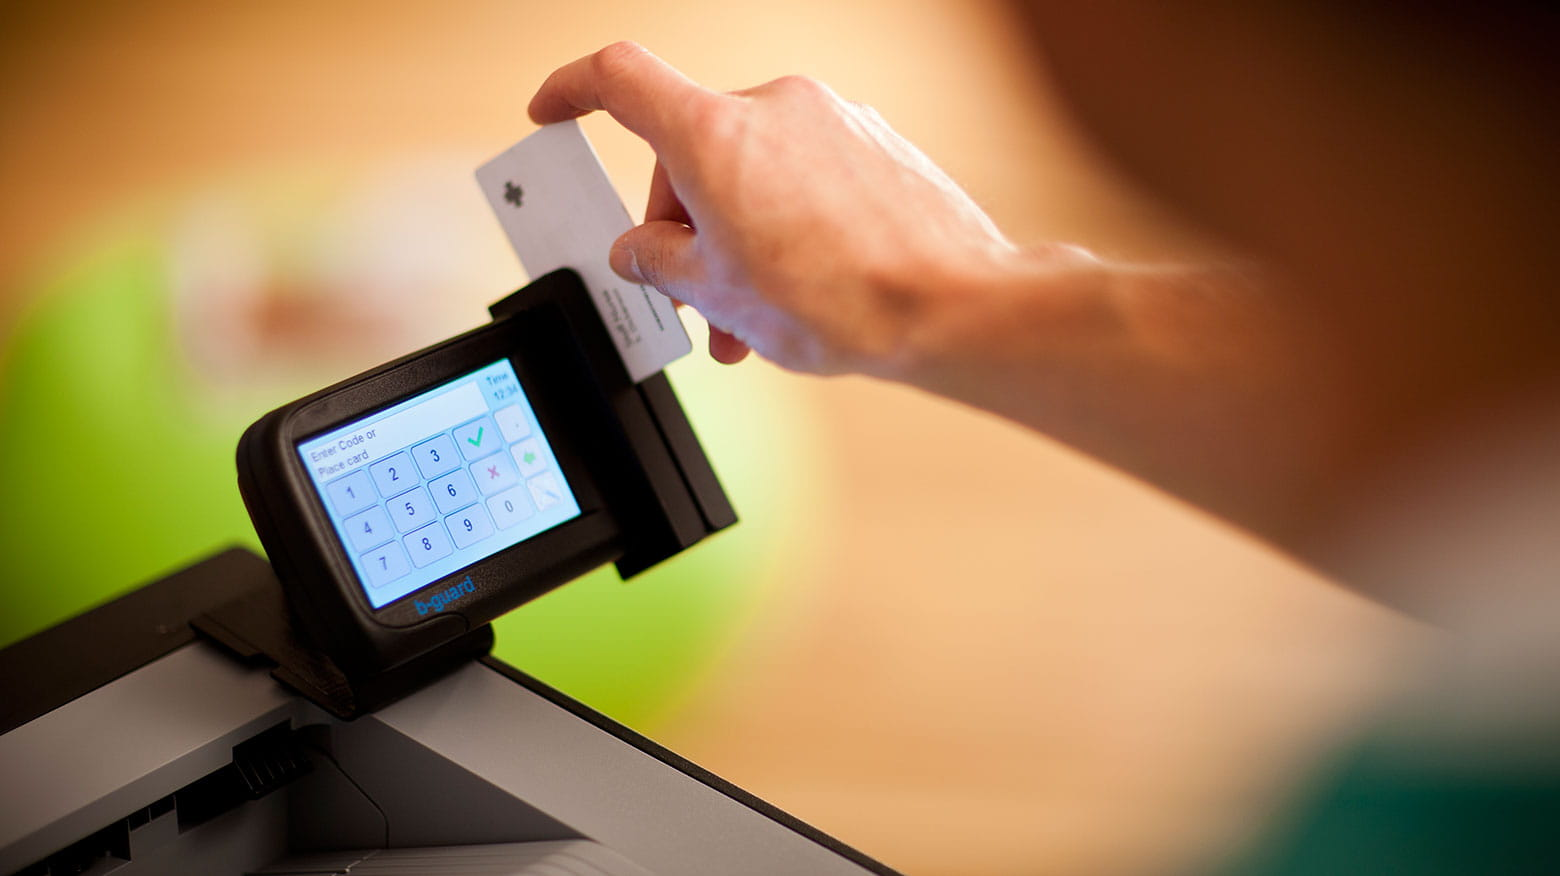 brother ID card readers solutions